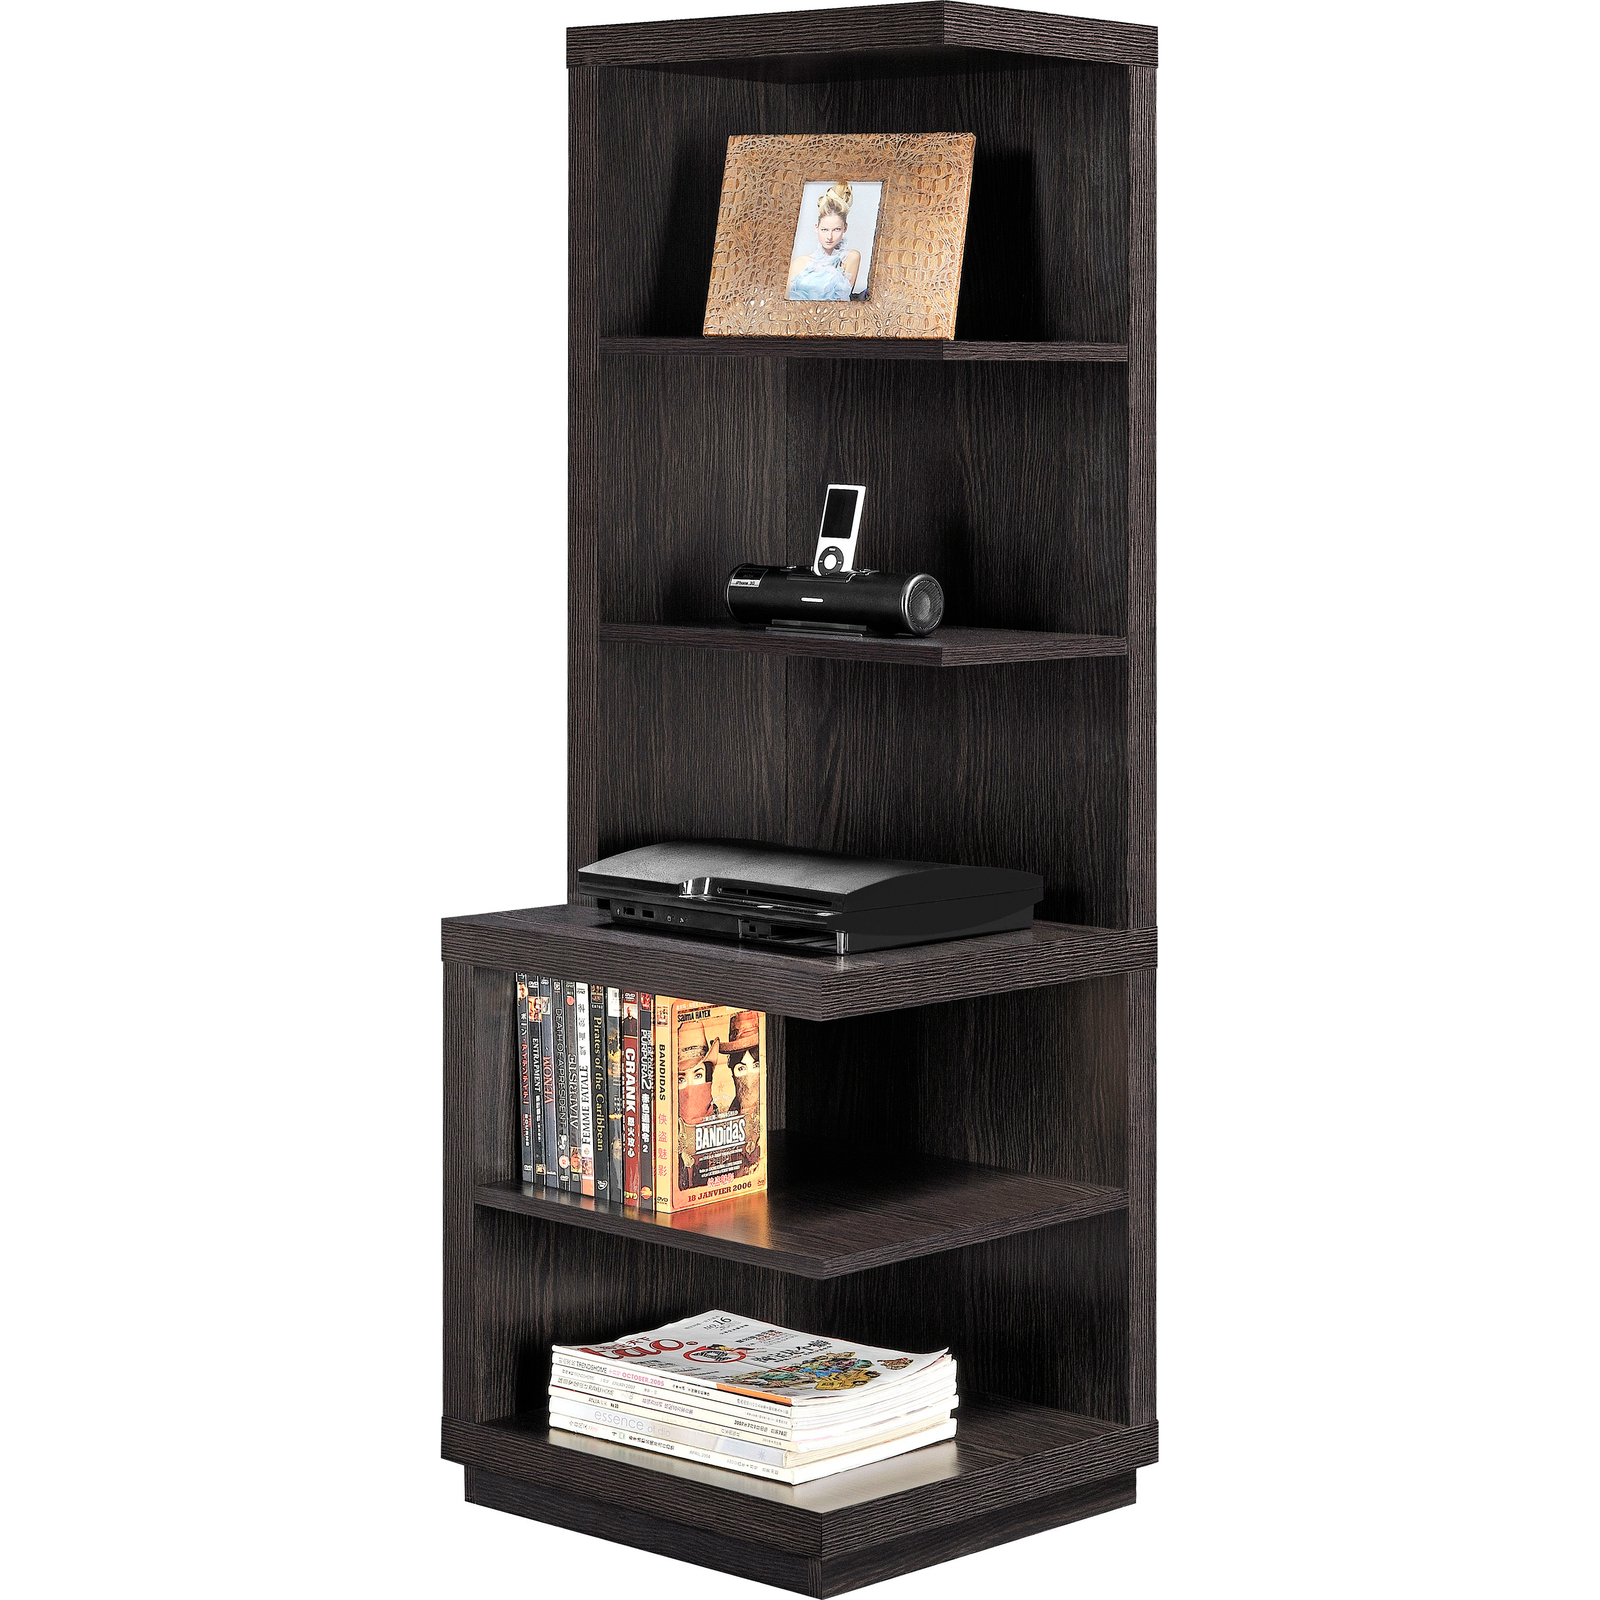 Corner shelf bookcase brown wood 5 shelves book storage for Display home furniture